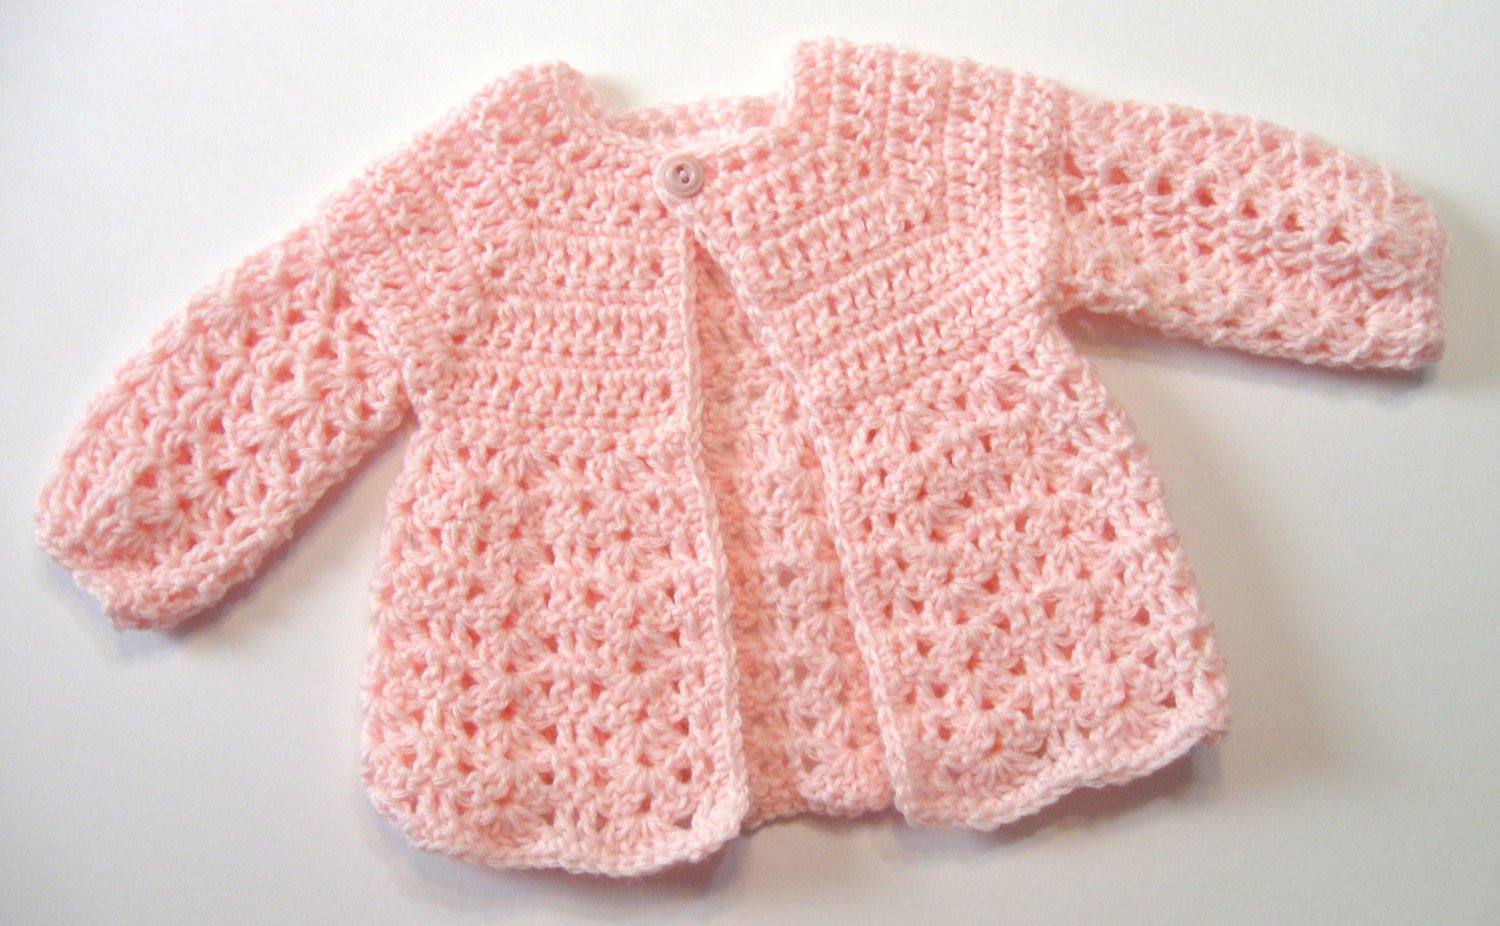 Toddler Sweater Crochet Pattern Awesome Crochet Pattern Baby Sweater Perfect for Girls Oma S Of Attractive 41 Models toddler Sweater Crochet Pattern